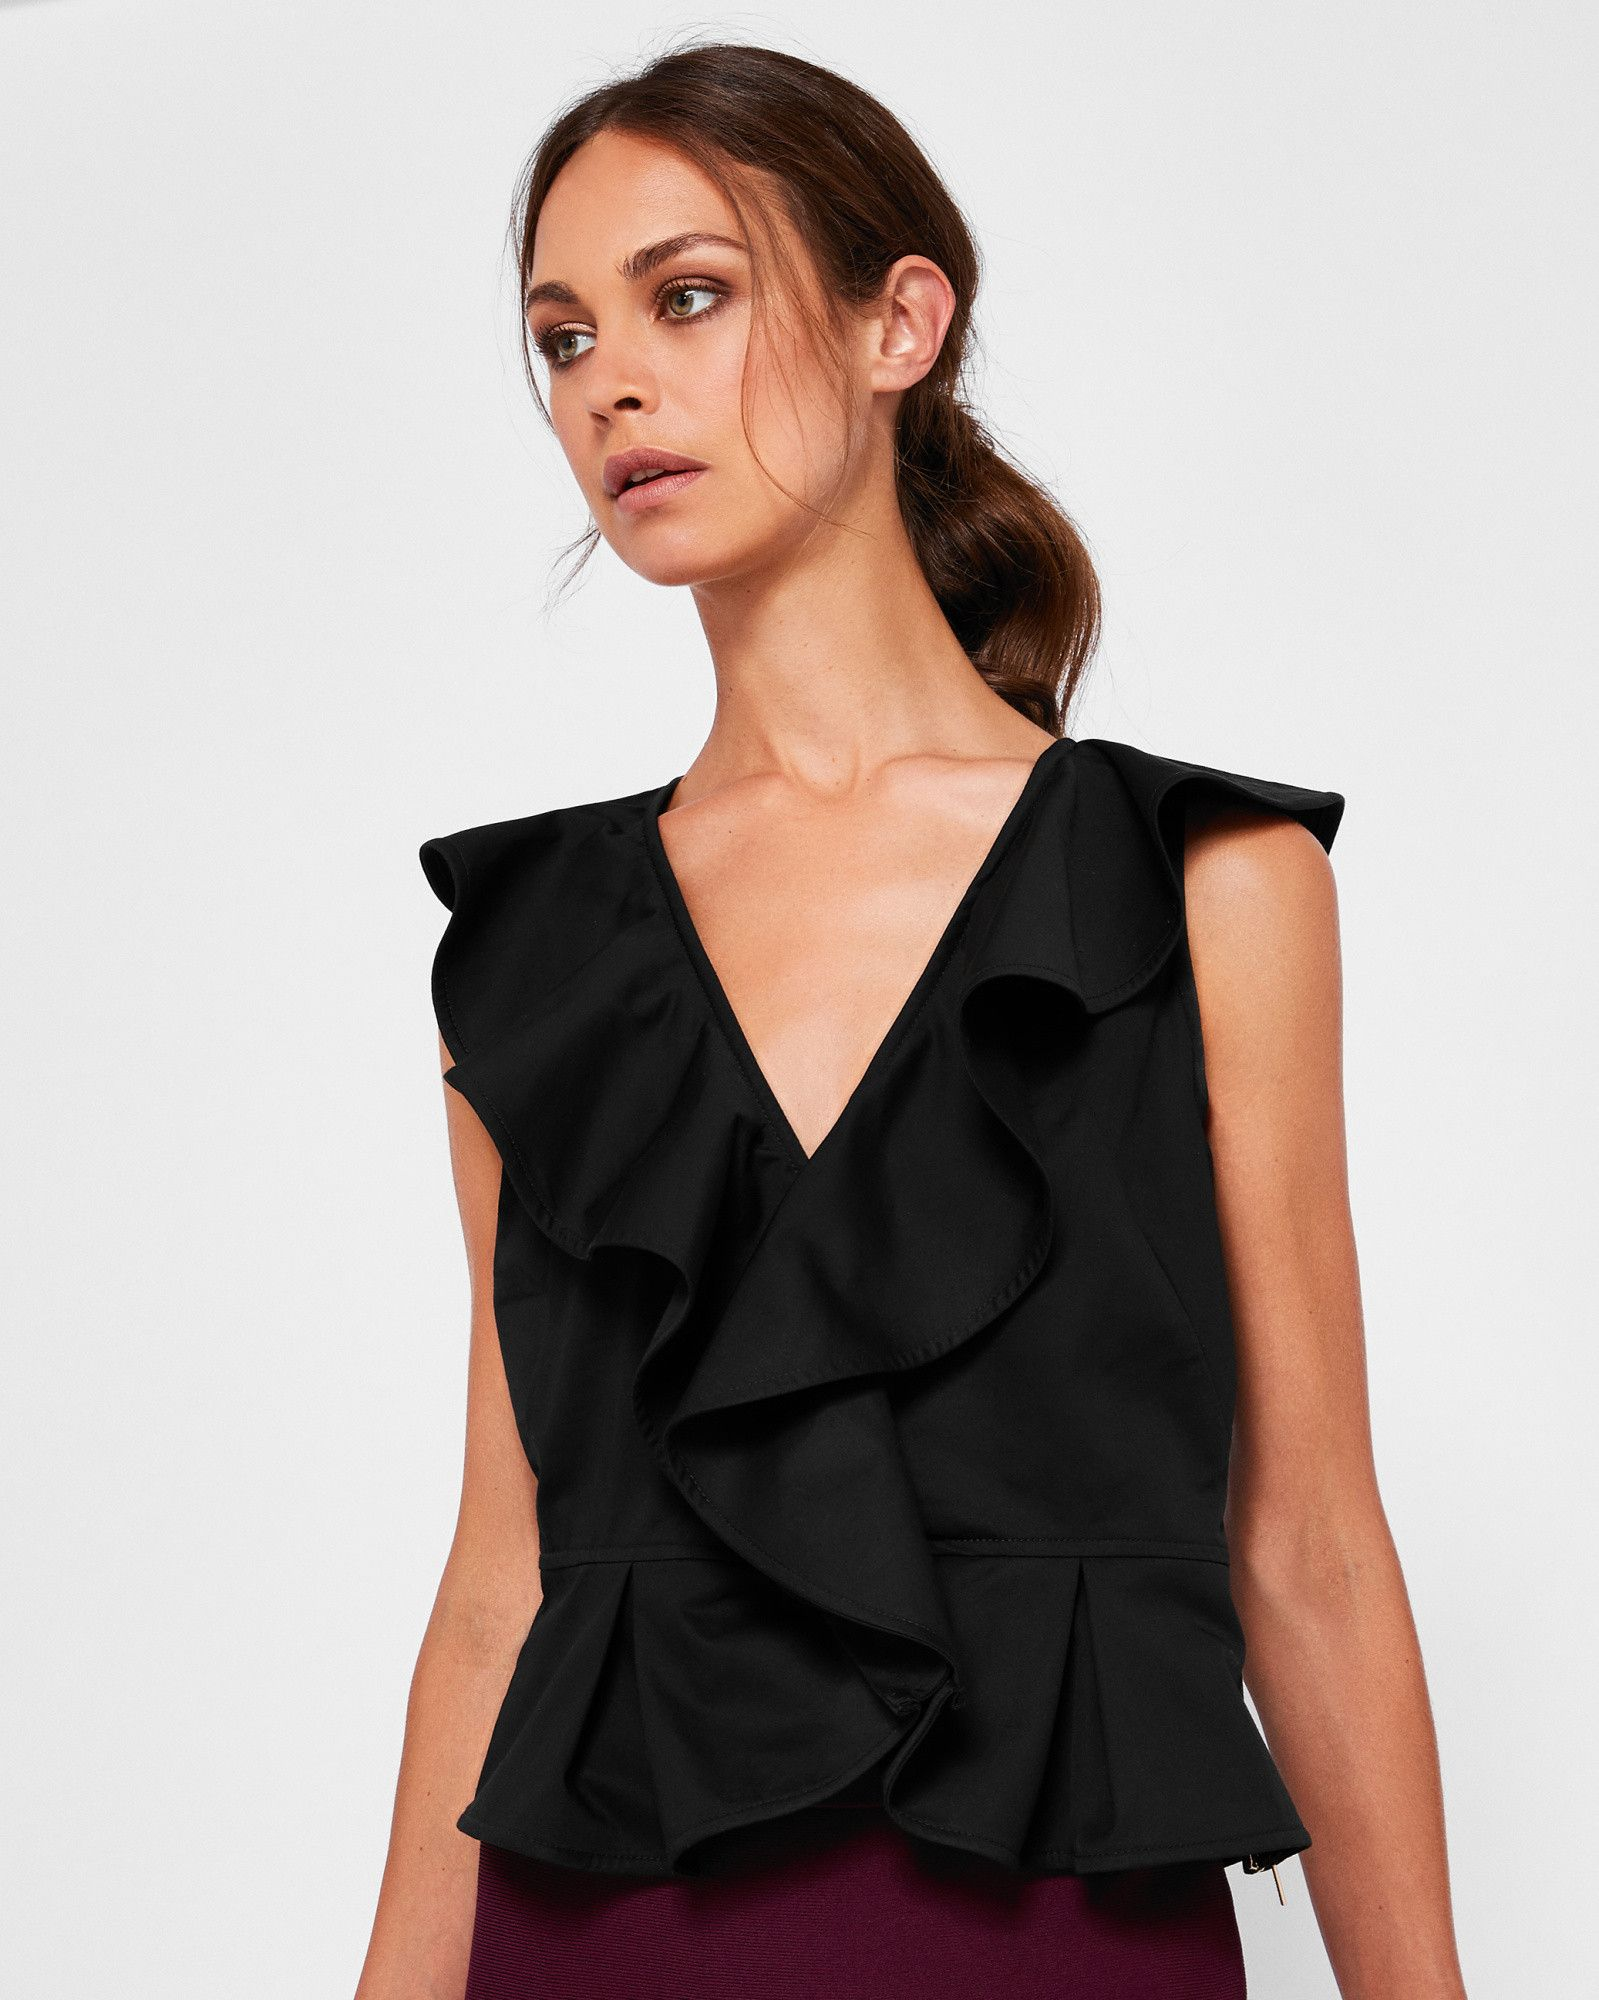 65f3056d522d3 Shop our Ted Baker picks on Keep. LIKARN Ruffle front V-neck top  TedToToe